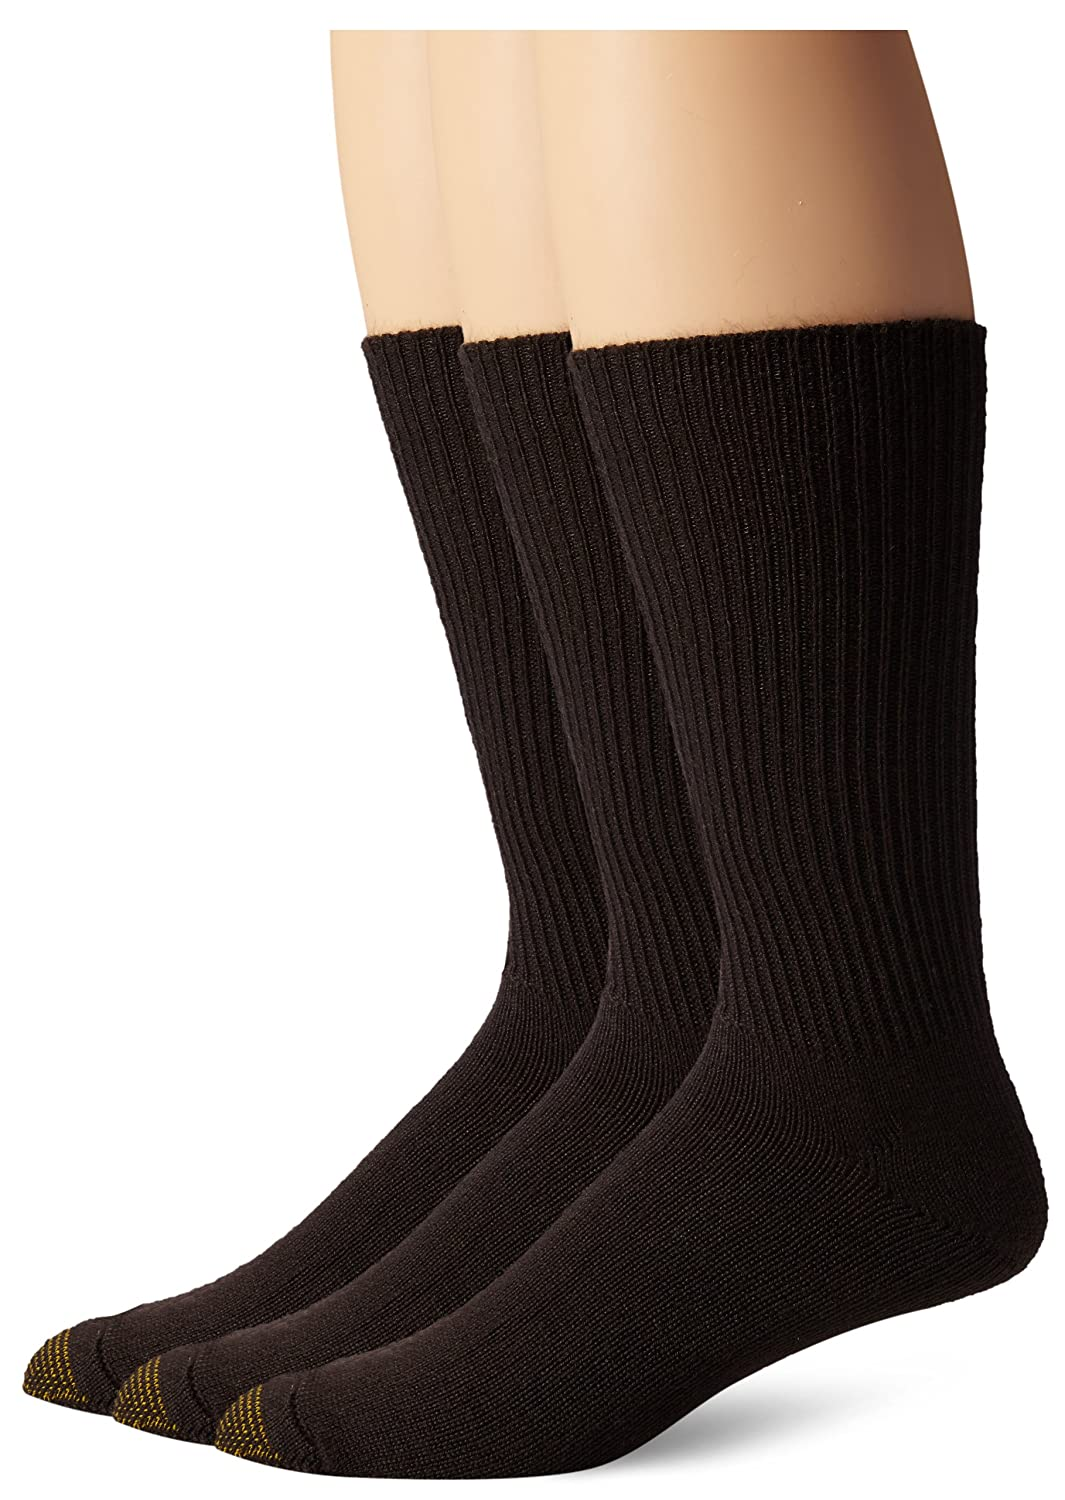 Gold Toe Men's Fluffies Sock, 3 Pack Extended Gold Toe Men's Socks 523E